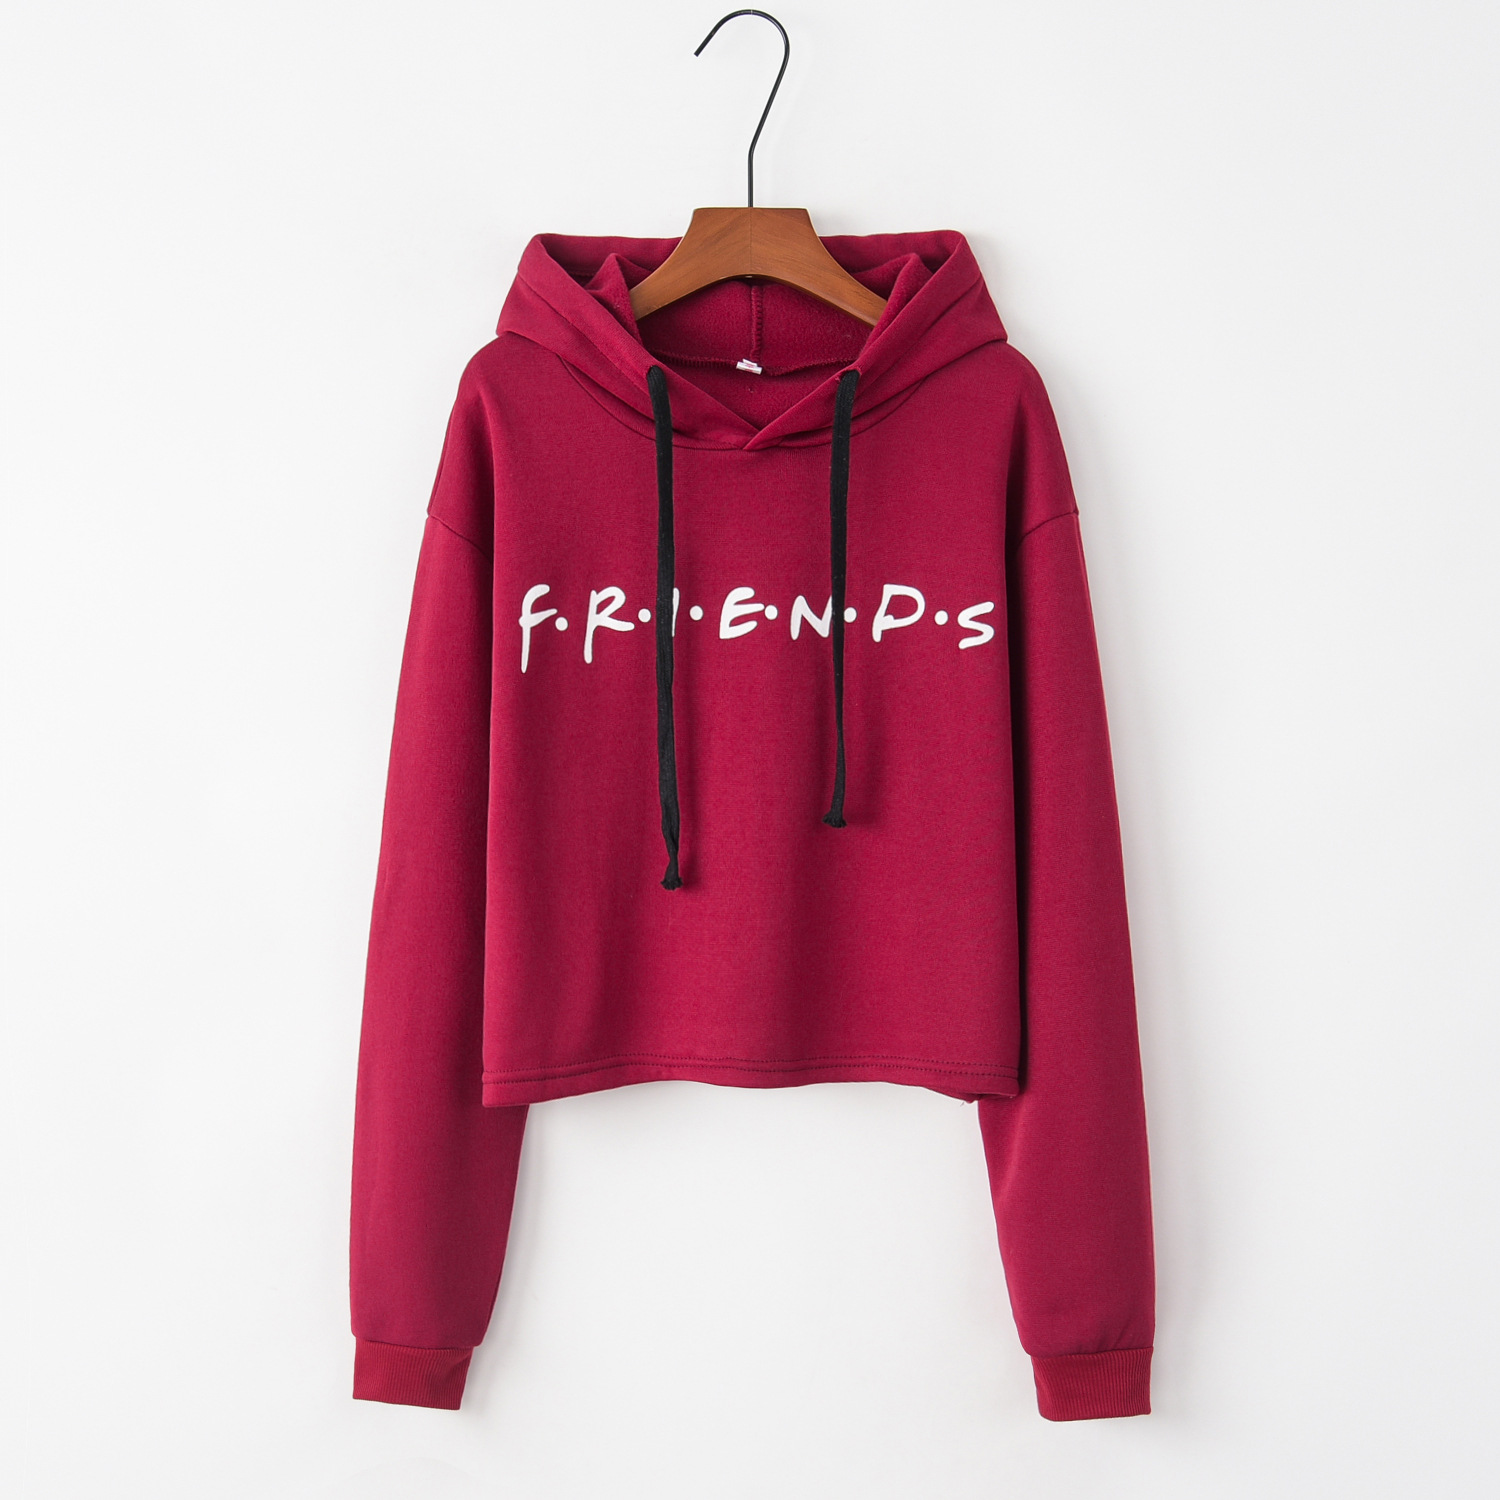 Red Friends 2020 New Design Hot Sale Hoodies Sweatshirts Women Casual Kawaii Harajuku Sweat Girls European Tops Korean